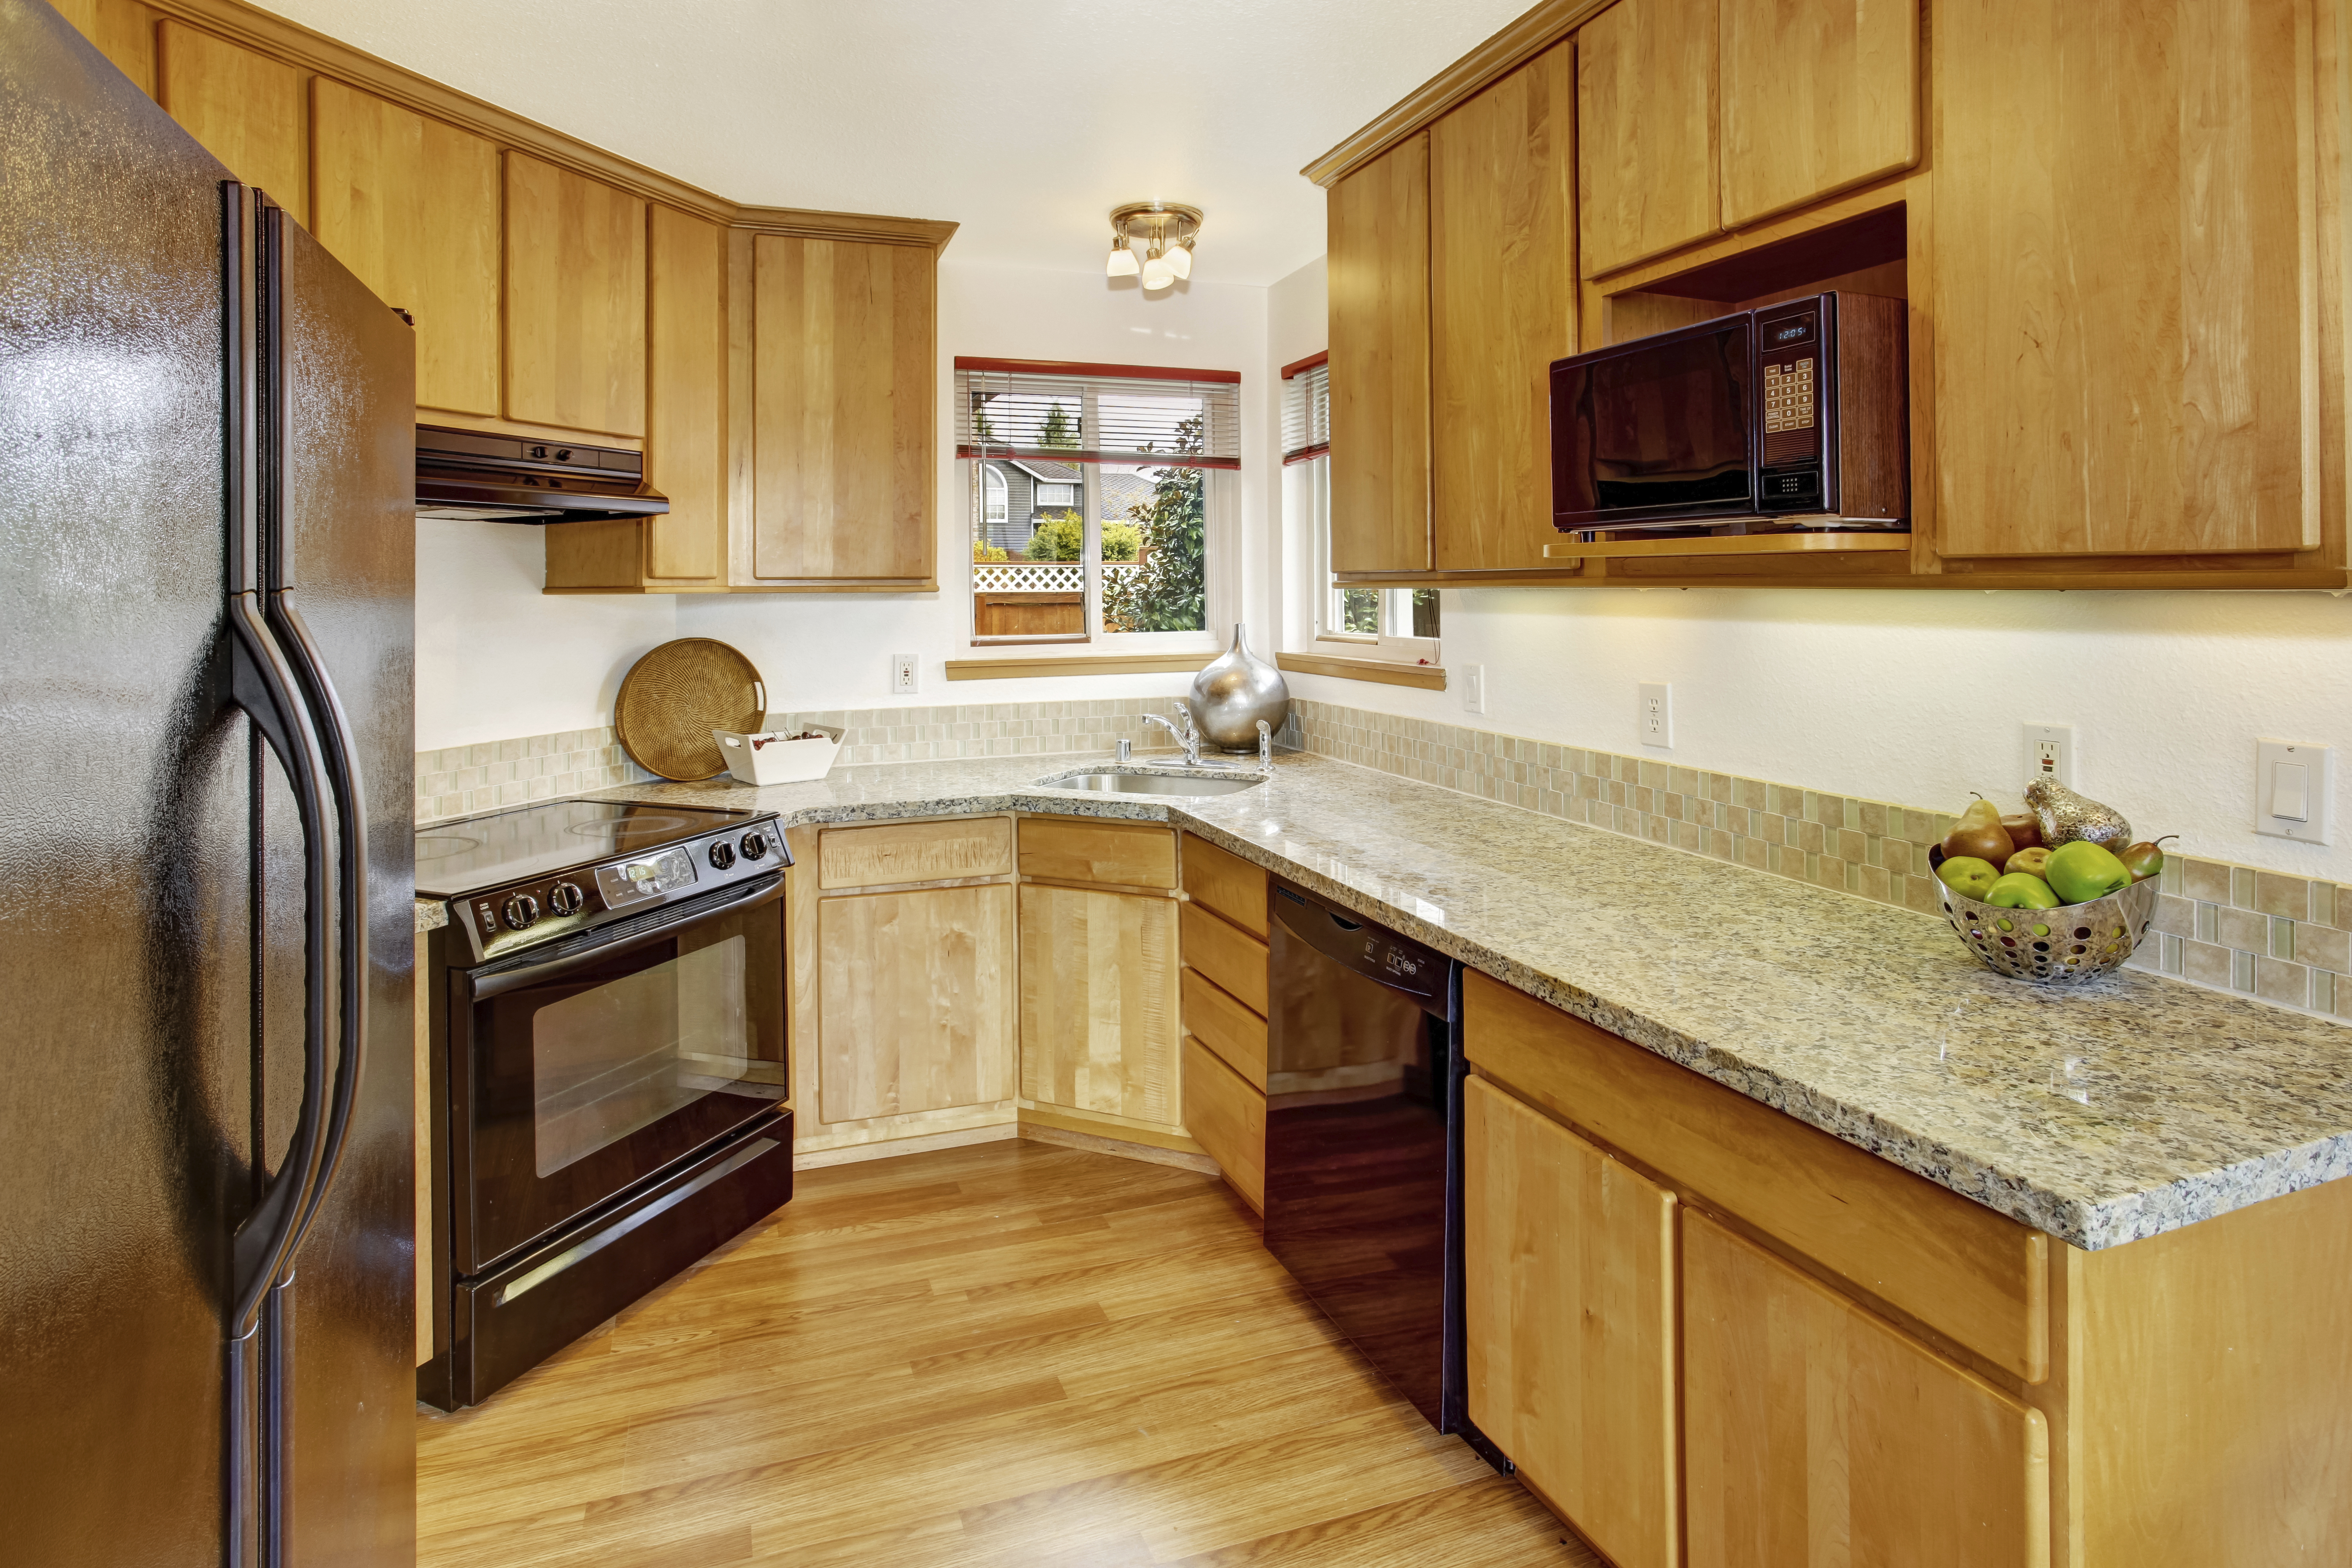 3 tips for remodeling your small kitchen